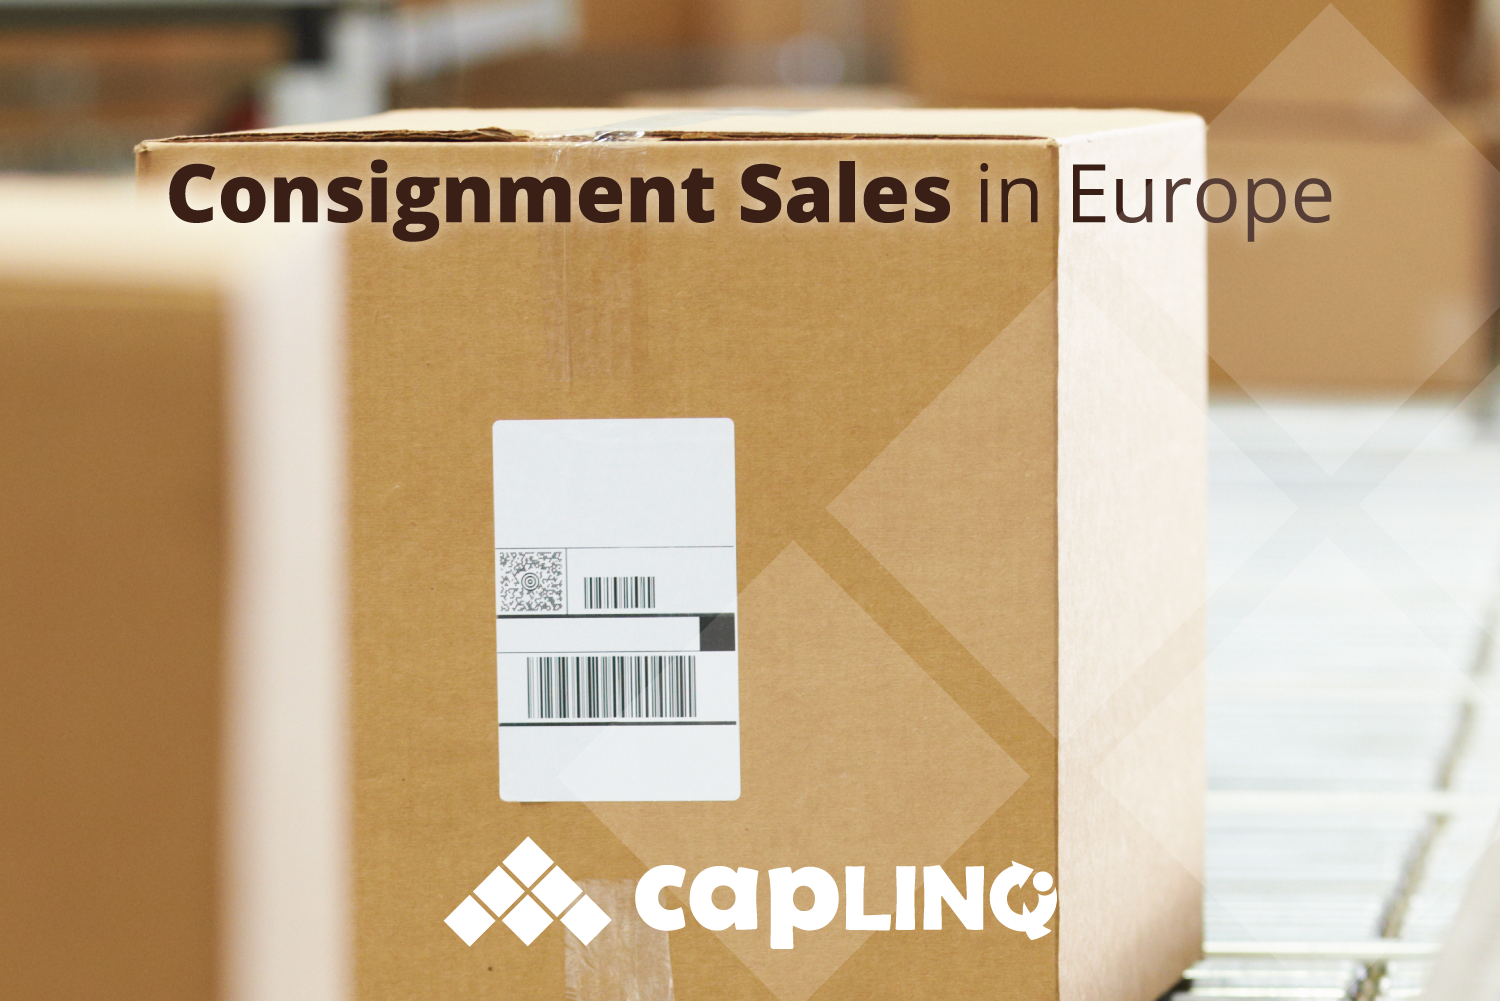 Benefits of Doing Consignment Sales in Europe